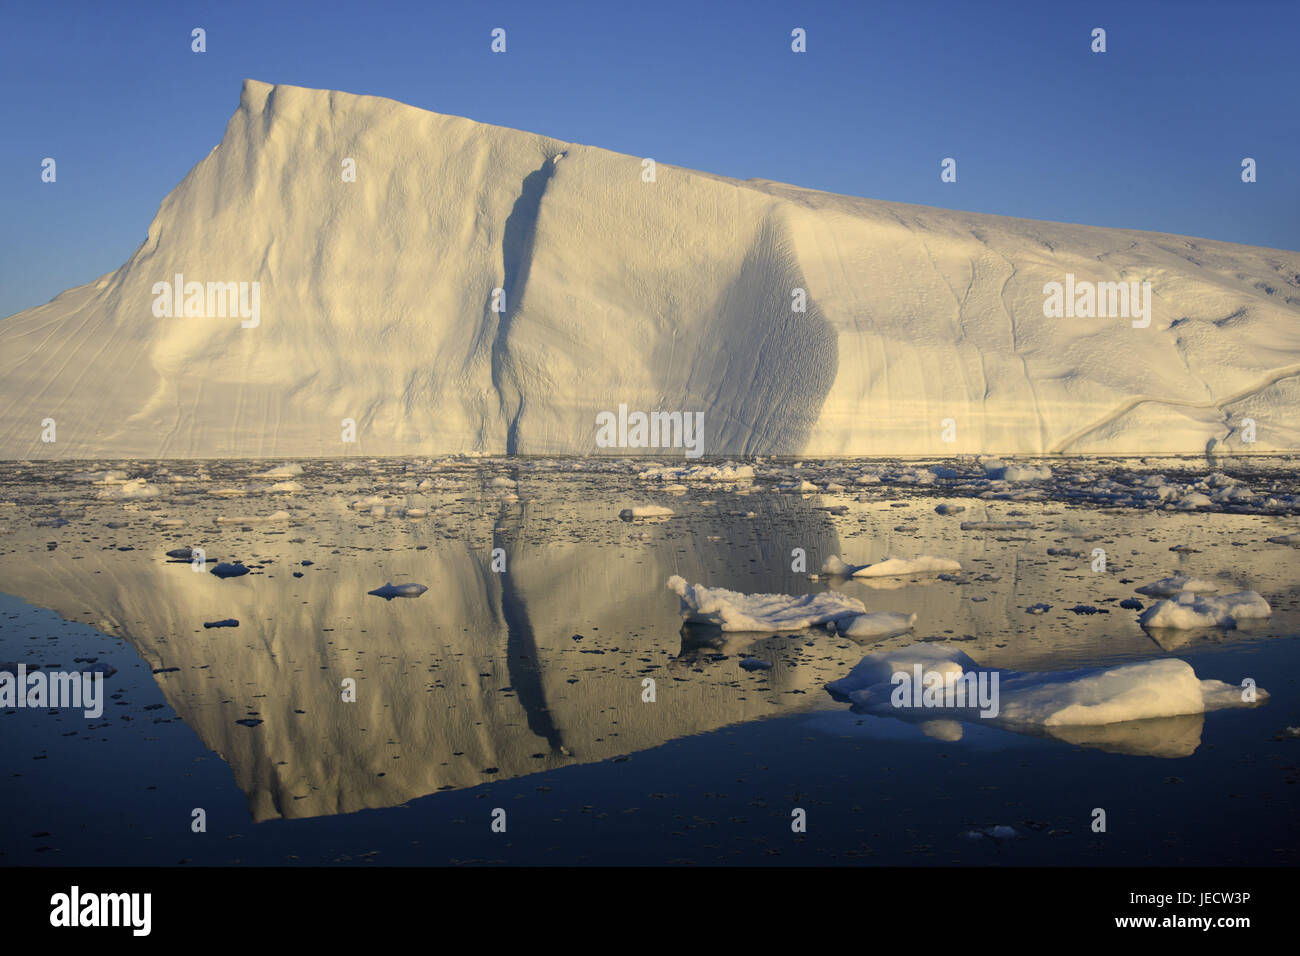 Greenland, Disco Bay, Ilulissat, fjord, icebergs, detail, Western Greenland, ice, glacier, the Arctic, summer, mirroring, Stock Photo